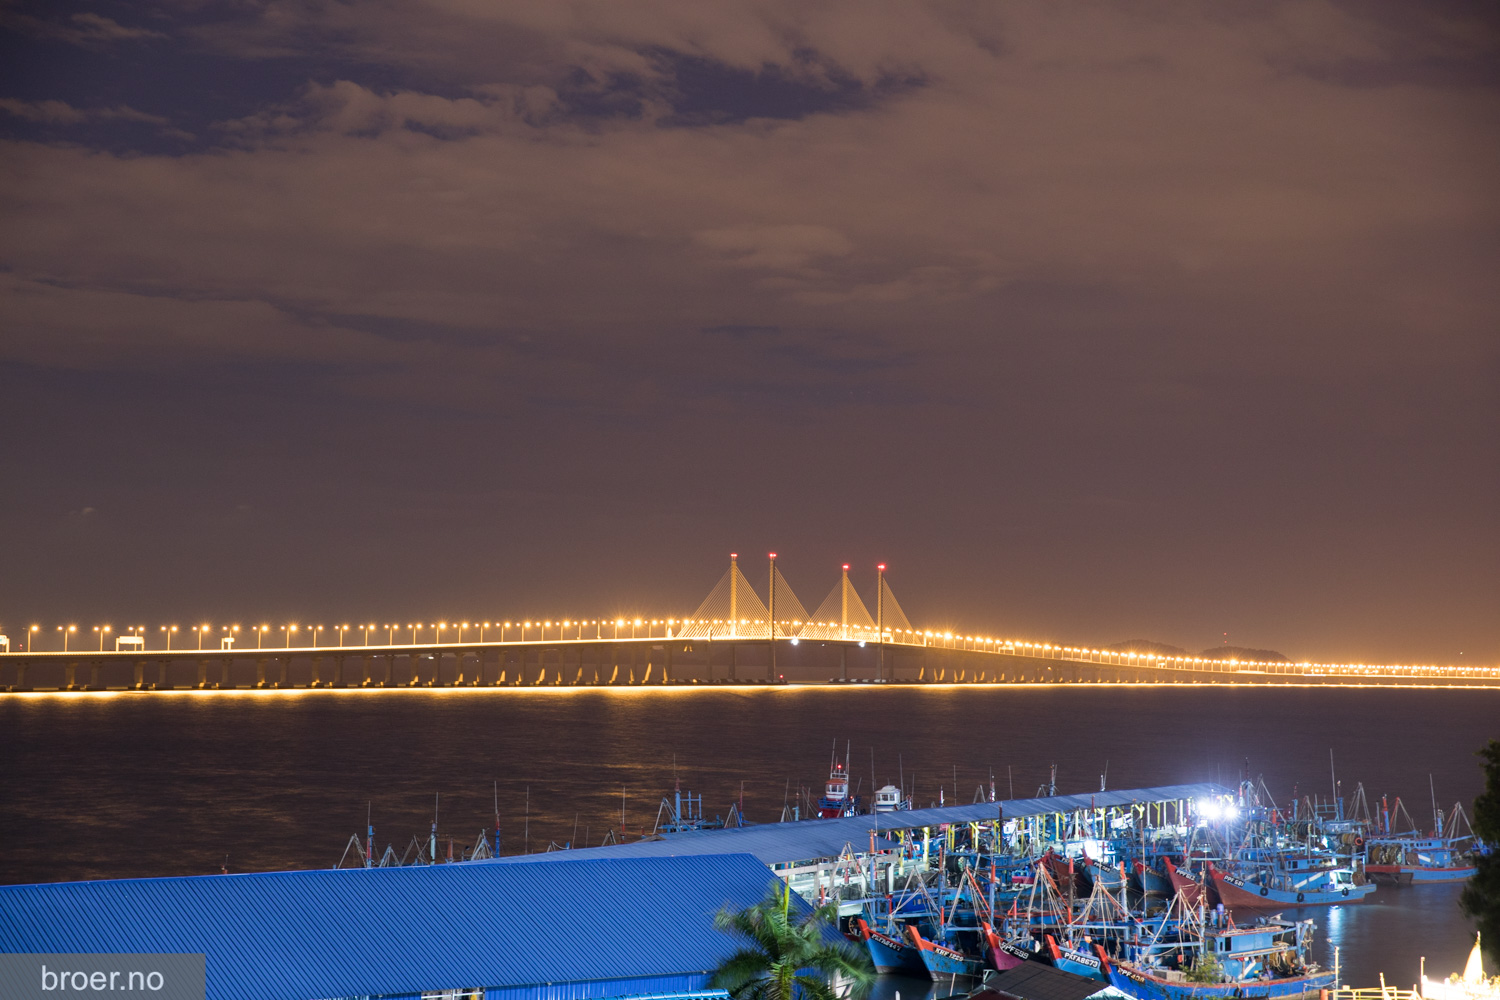 picture of Sultan Abdul Halim Muadzam Shah Bridge